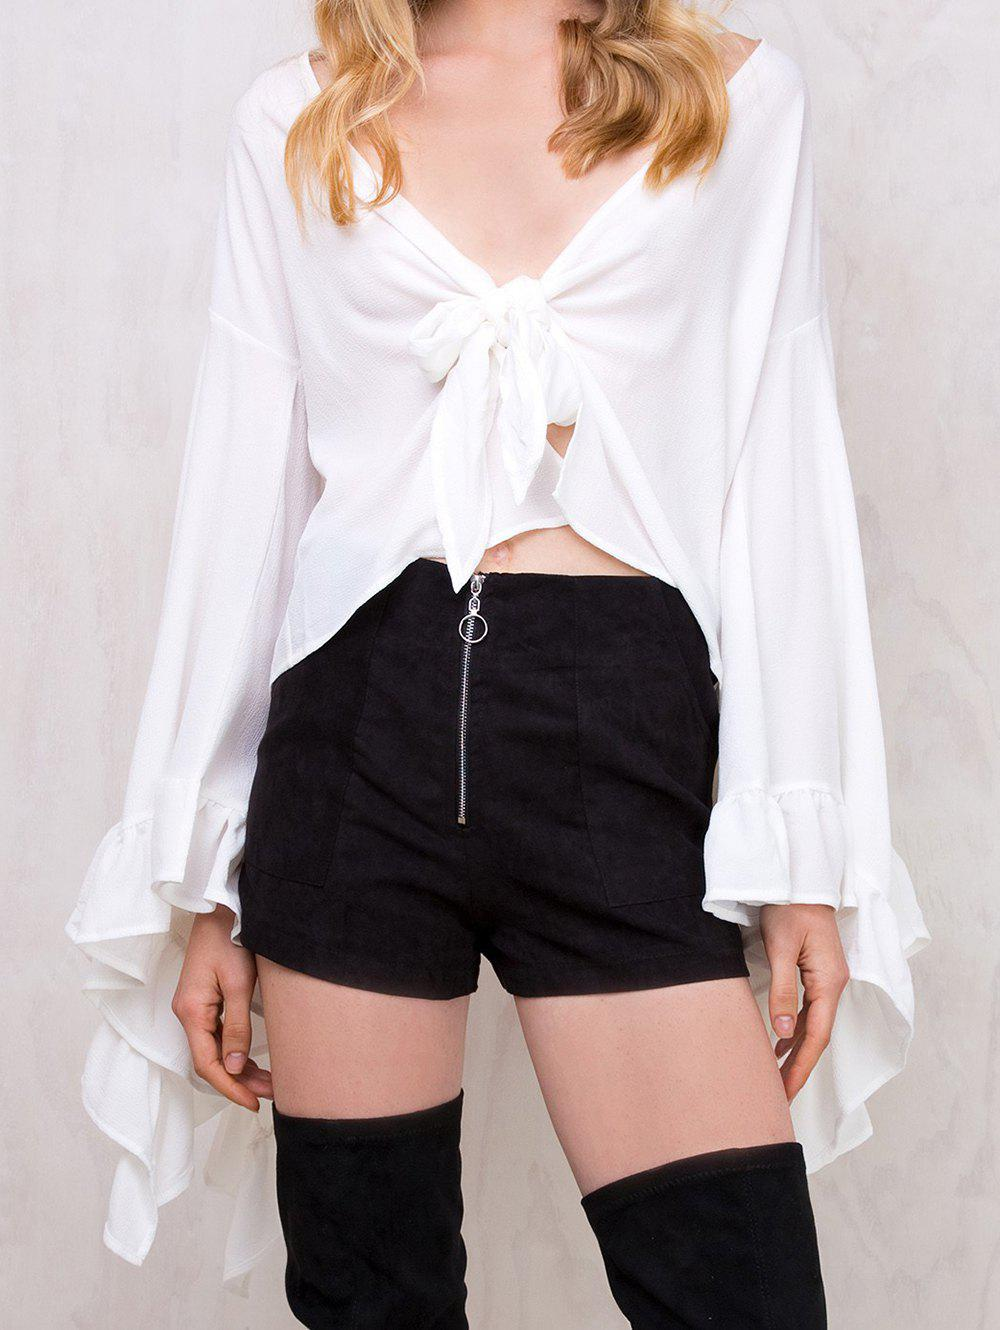 Latest Women Casual V-Neck Blouse Chiffon Loose Long Sleeve Tops Bandage Shirt